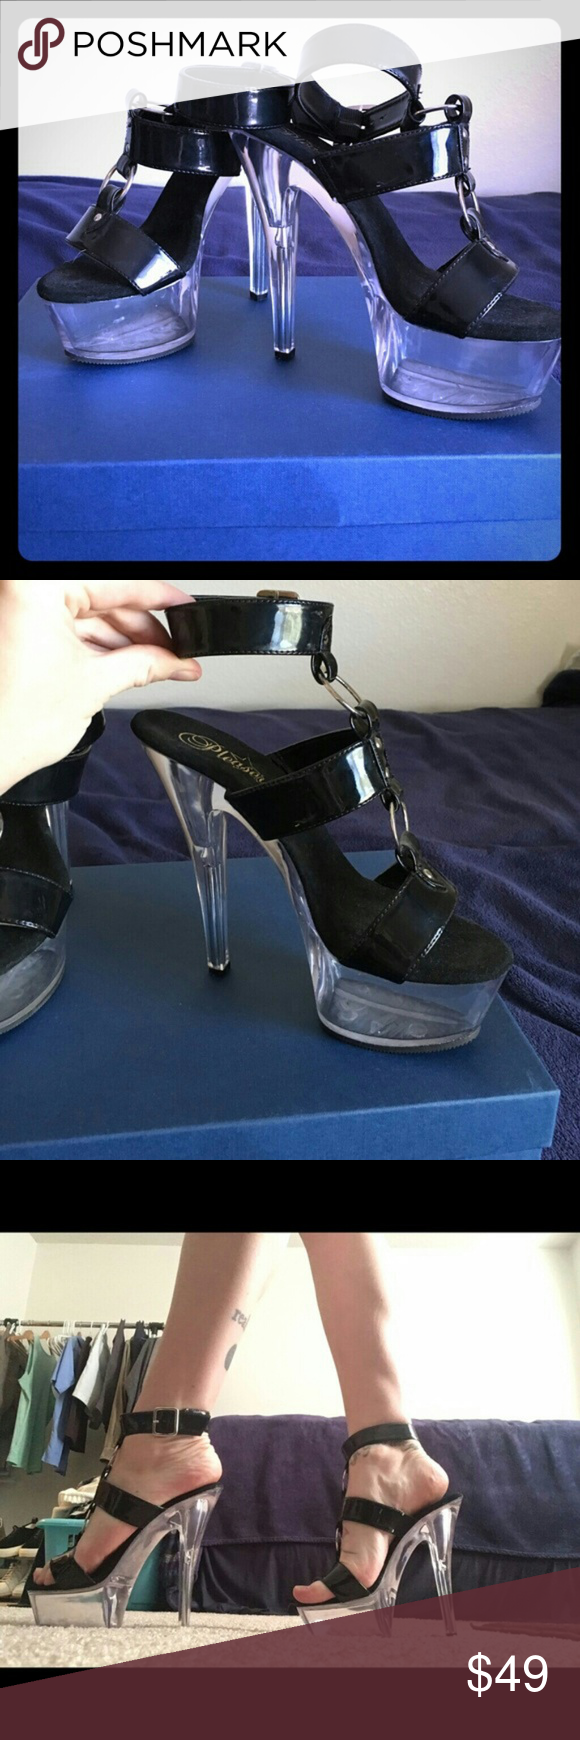 """Pleaser 6"""" strappy platform stelletoes Pleaser strappy open toe platform stelletoes with 6"""" heel and 2.5""""  clear platform over black. Very sexy for dressing up or dressing down or a night out on the town. Pleaser Shoes Platforms"""